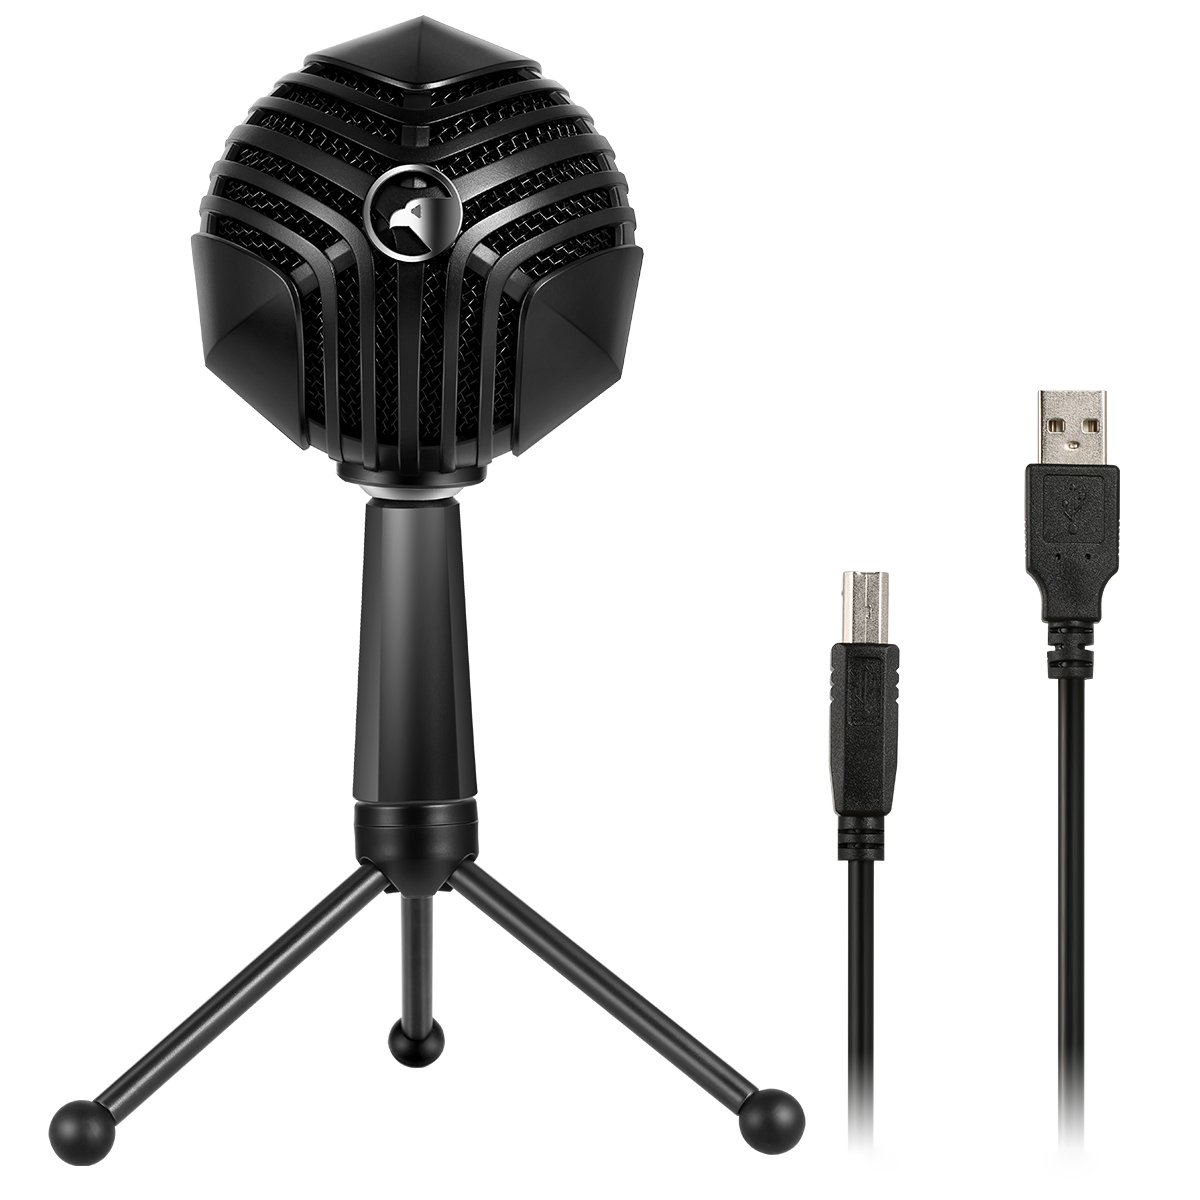 Persevere Condenser Microphone Gaming Mic, Multi-Pattern USB Recording Microphone, 360° Streamer Gamer Microphone for Computer, PC, Laptop, Mic for Recording, Gaming, Chatting, YouTube